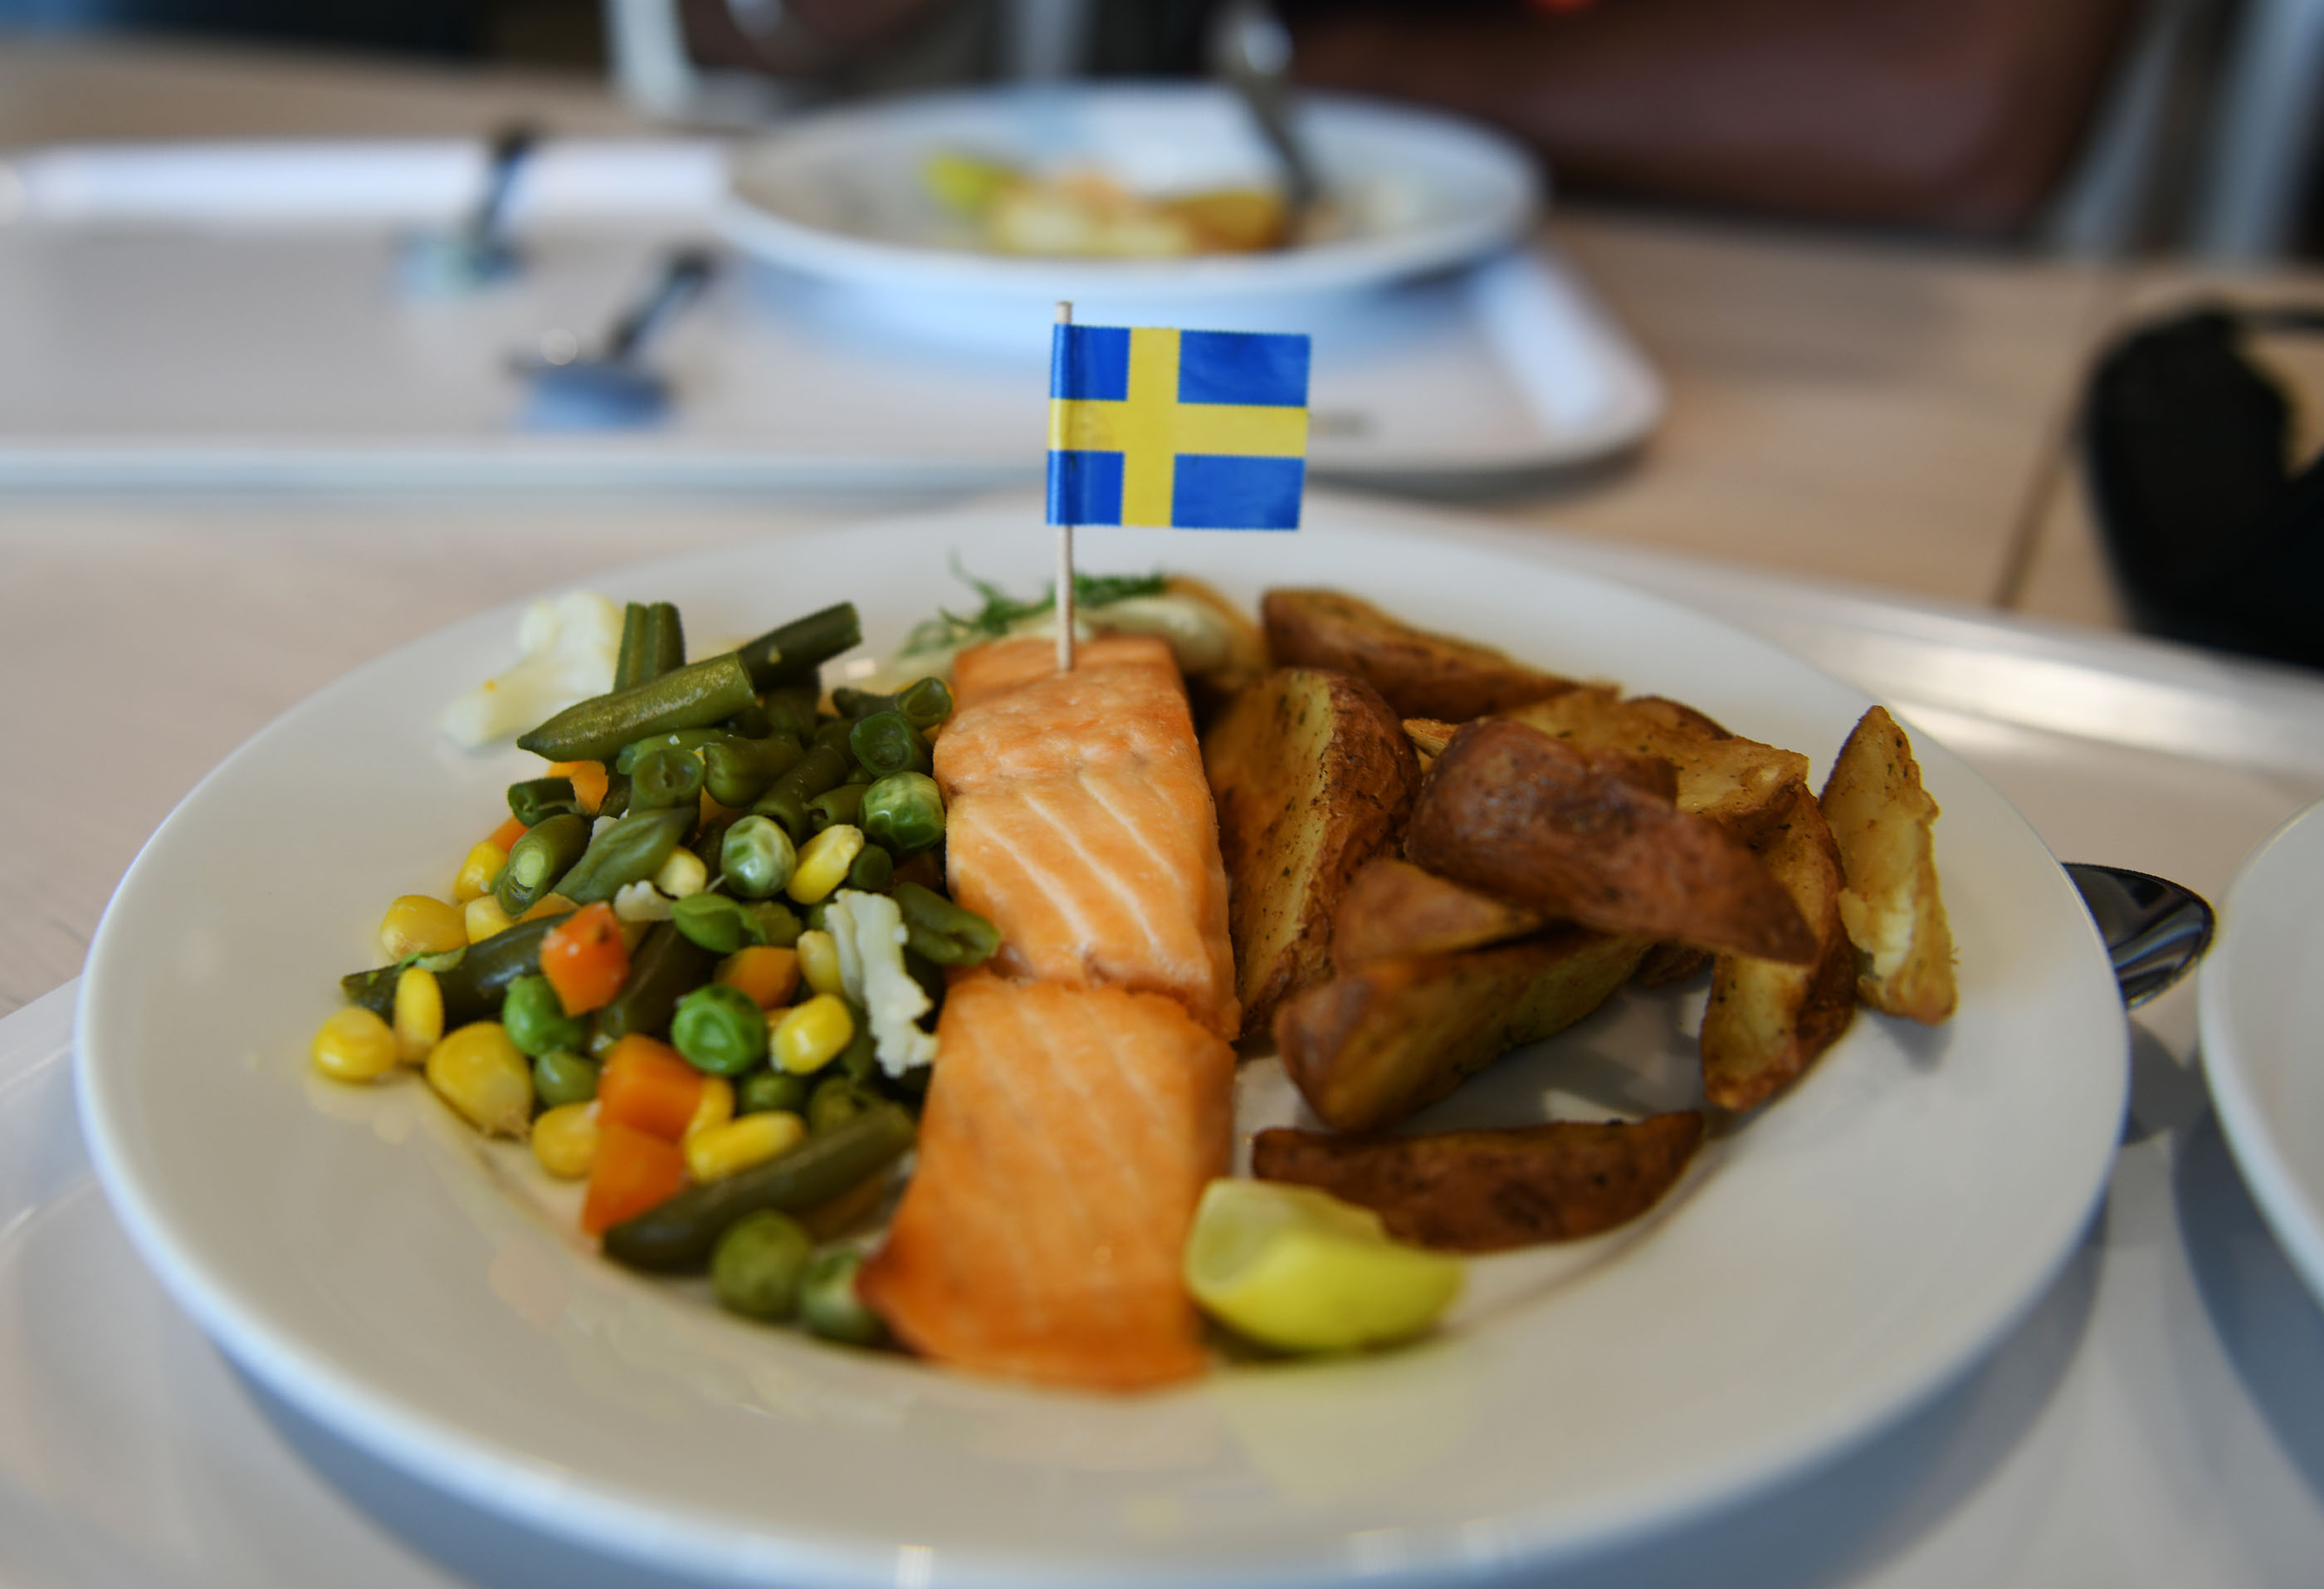 The Swedish national flag is seem placed on a plate of food at the restaurant section the new IKEA store in Hyderabad on August 8, 2018.